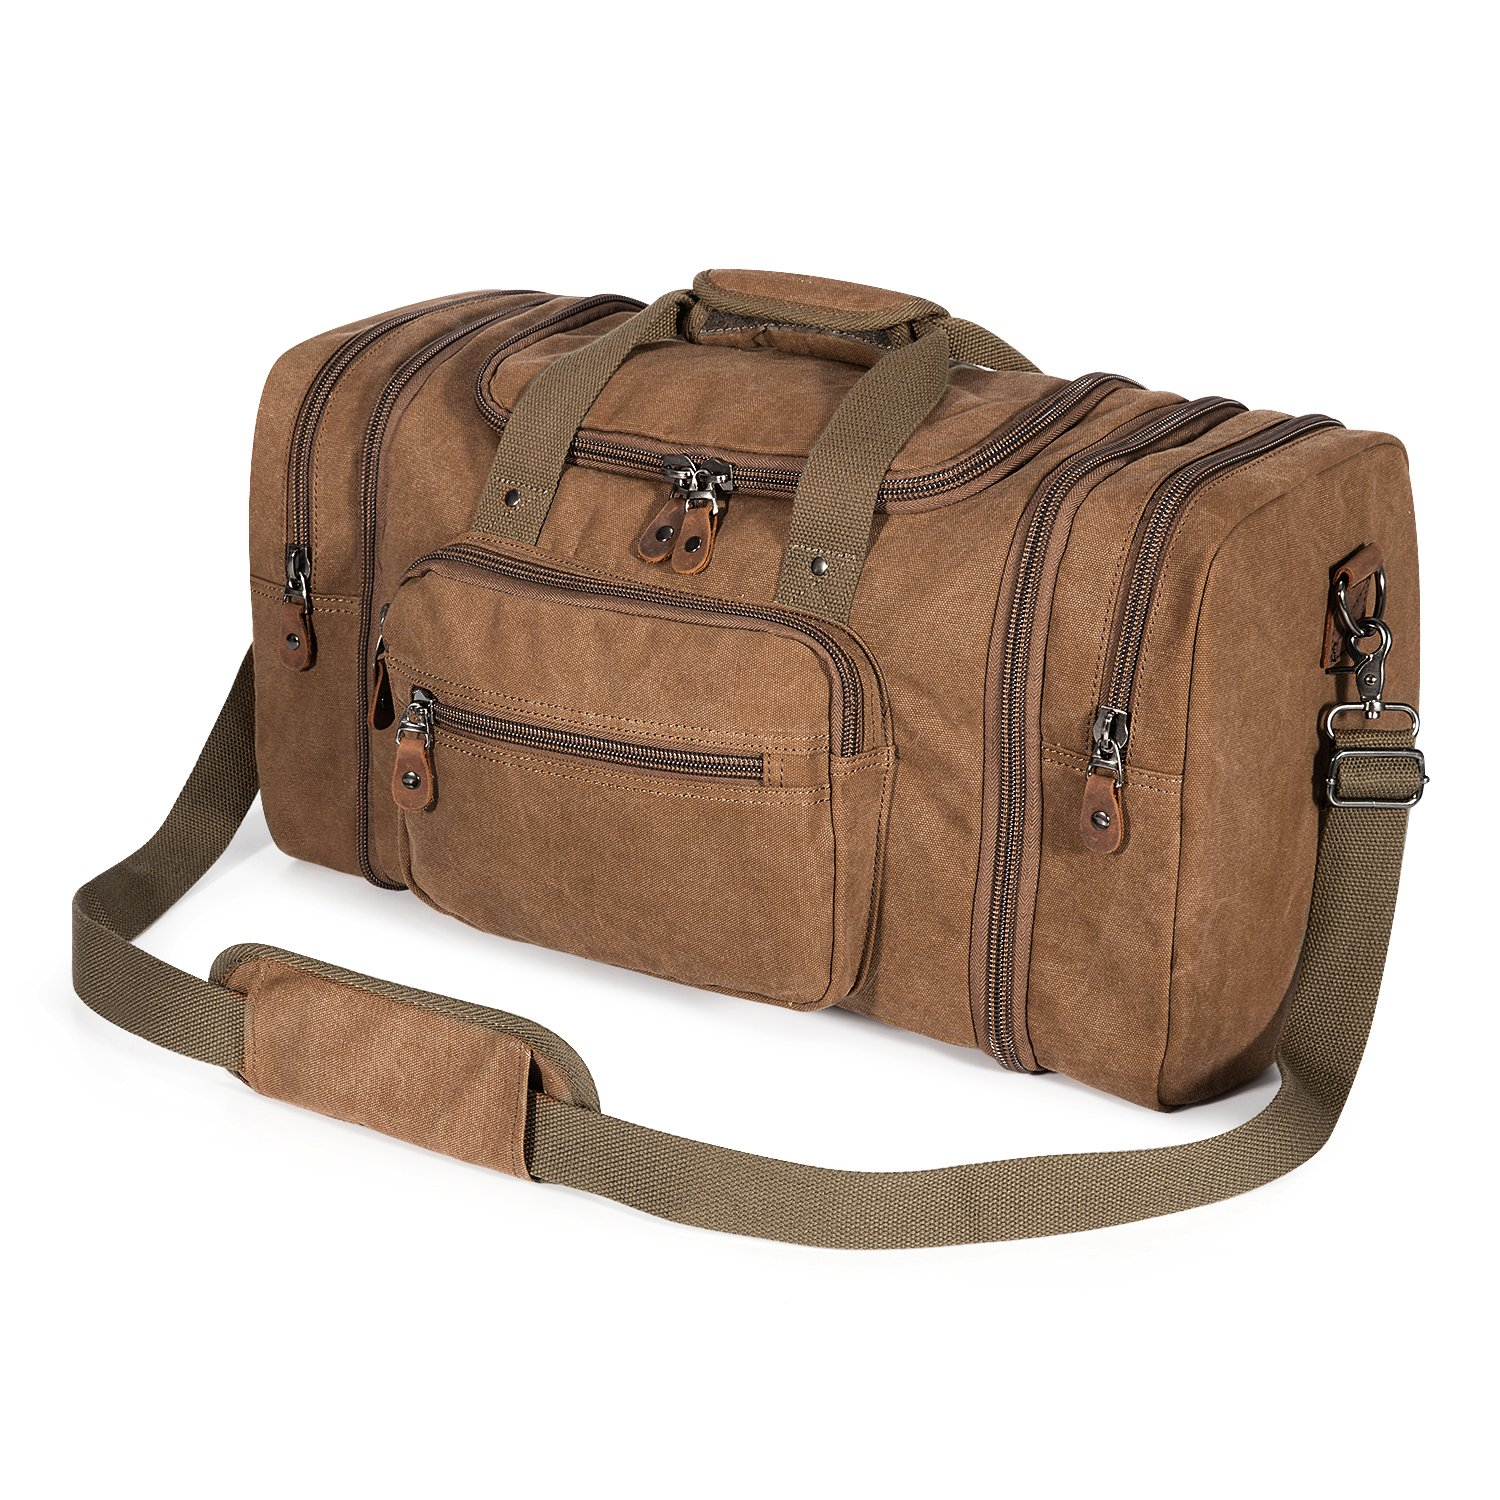 Plambag Canvas Duffle Bag for Travel, Oversized Duffel Overnight Weekend Bag(Coffee)